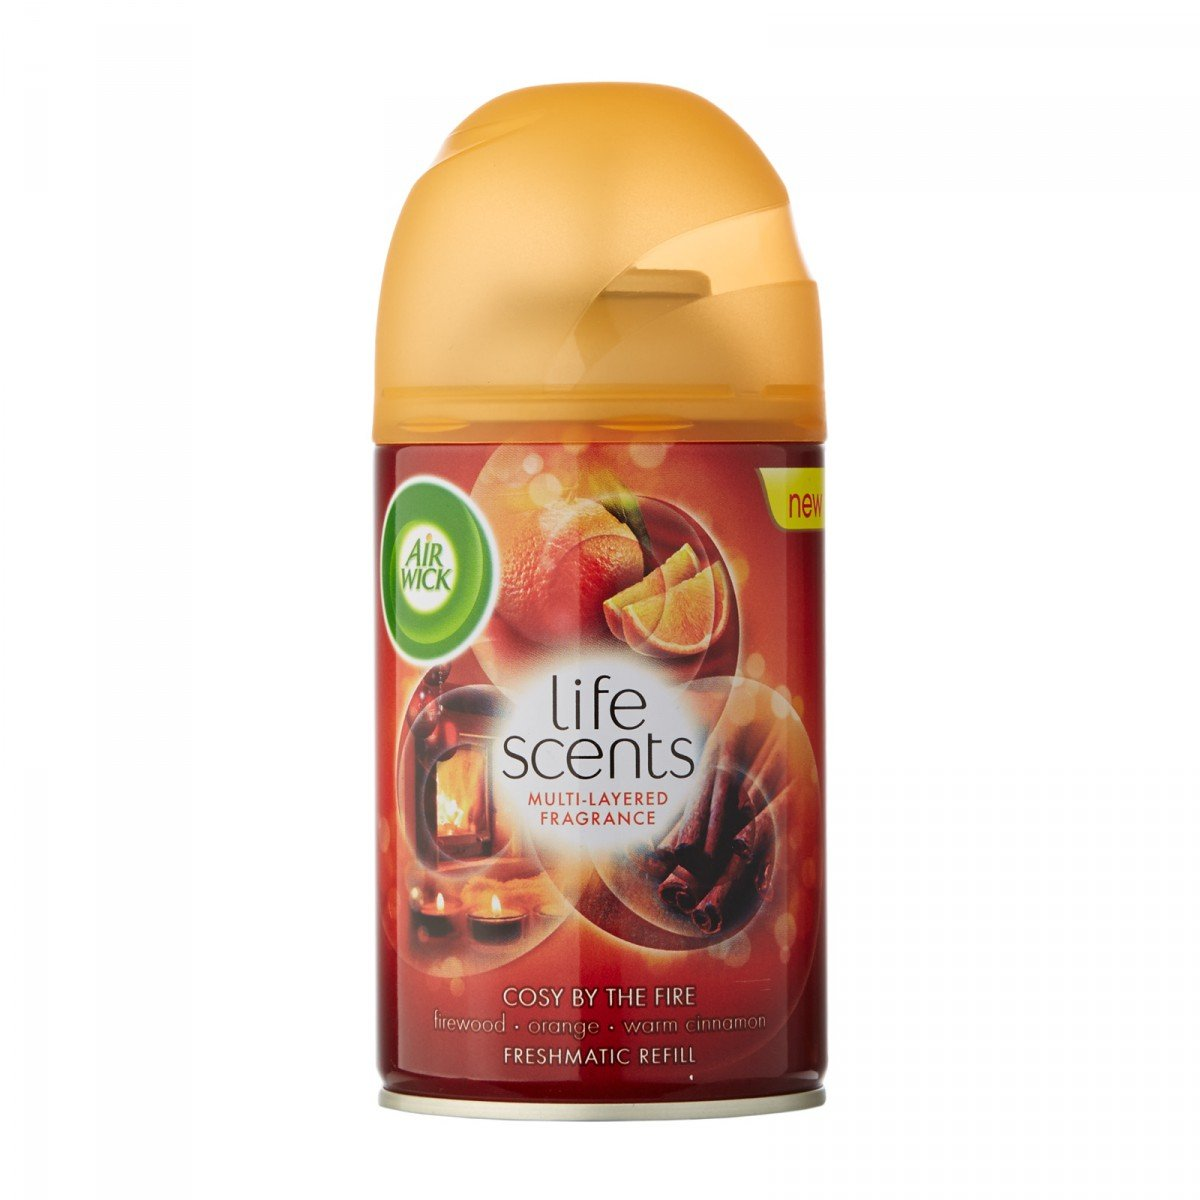 Air Wick Freshmatic Refill Life Scents Multi-Layered Fragrance Cosy By The Fire 250ml (6 Tins)